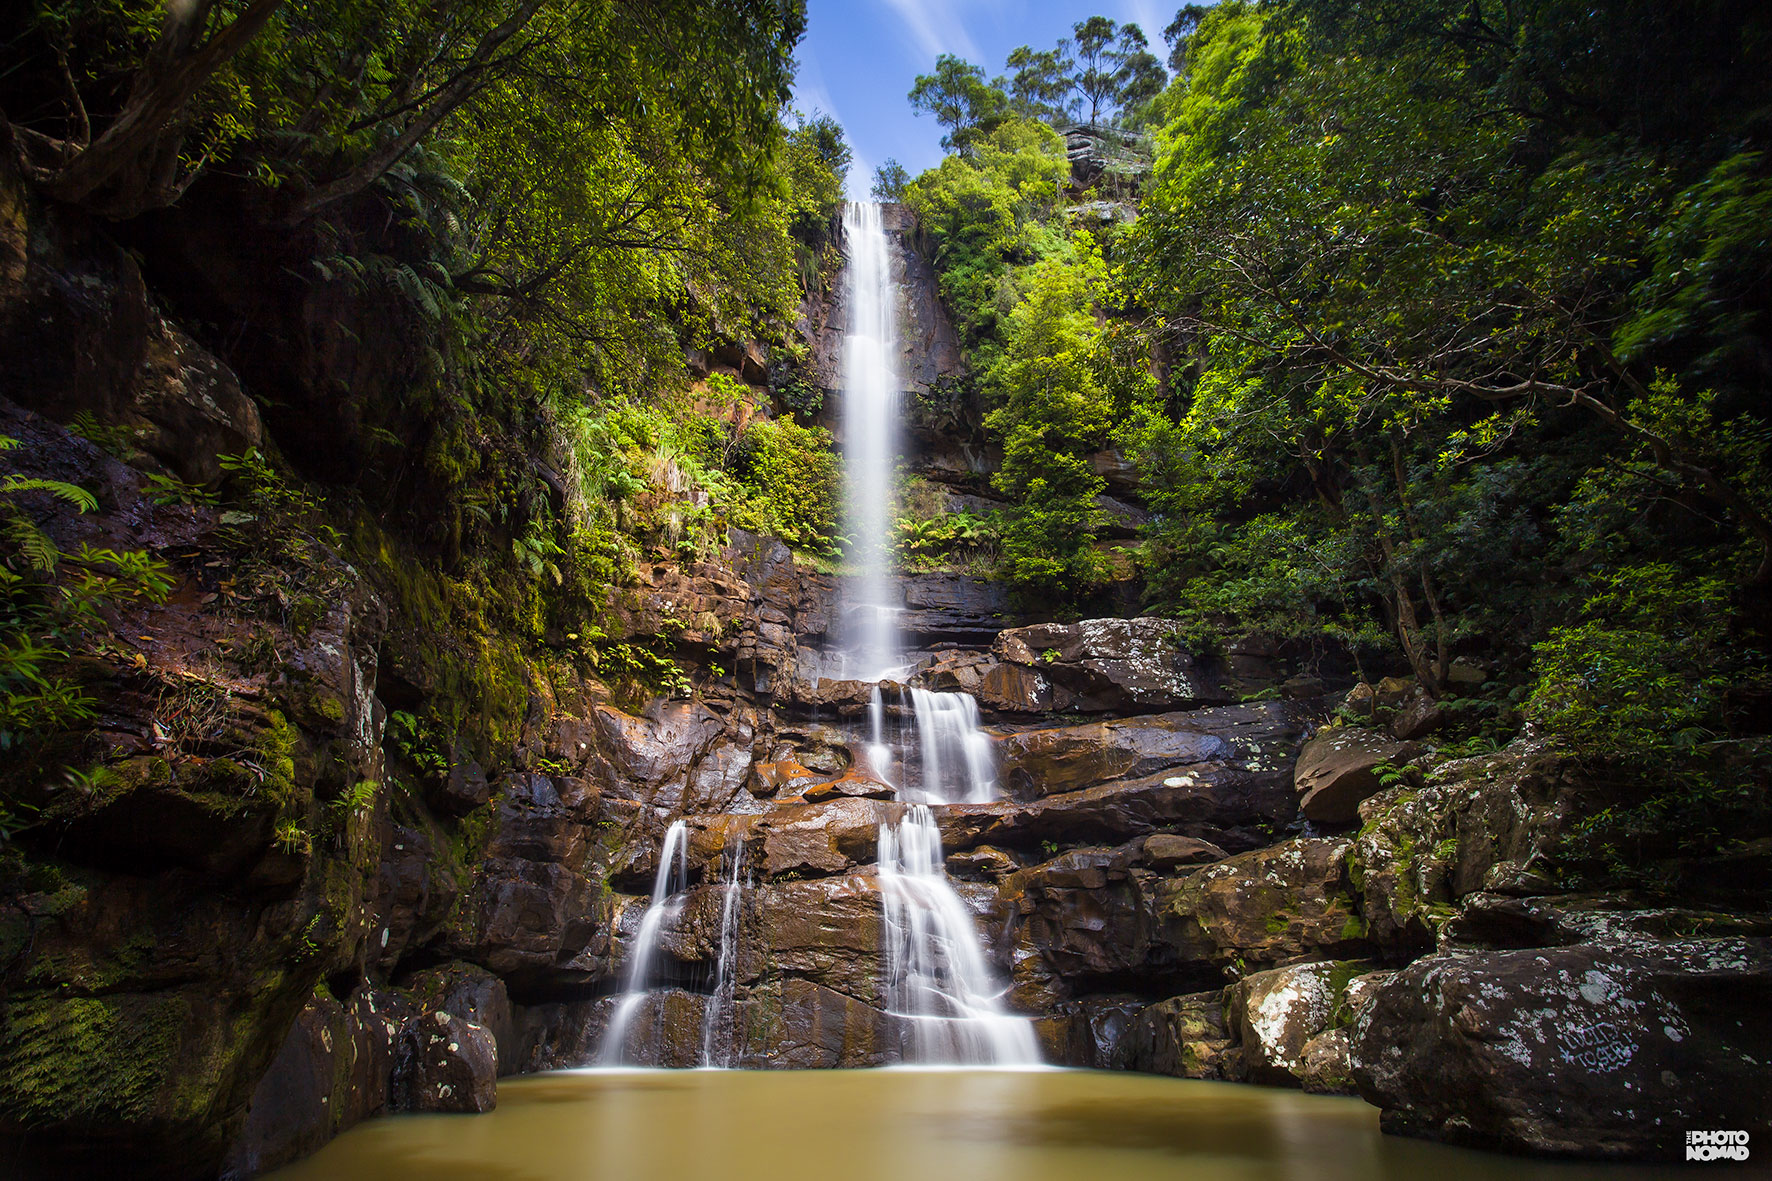 Kelly's Falls, Helensburgh NSW